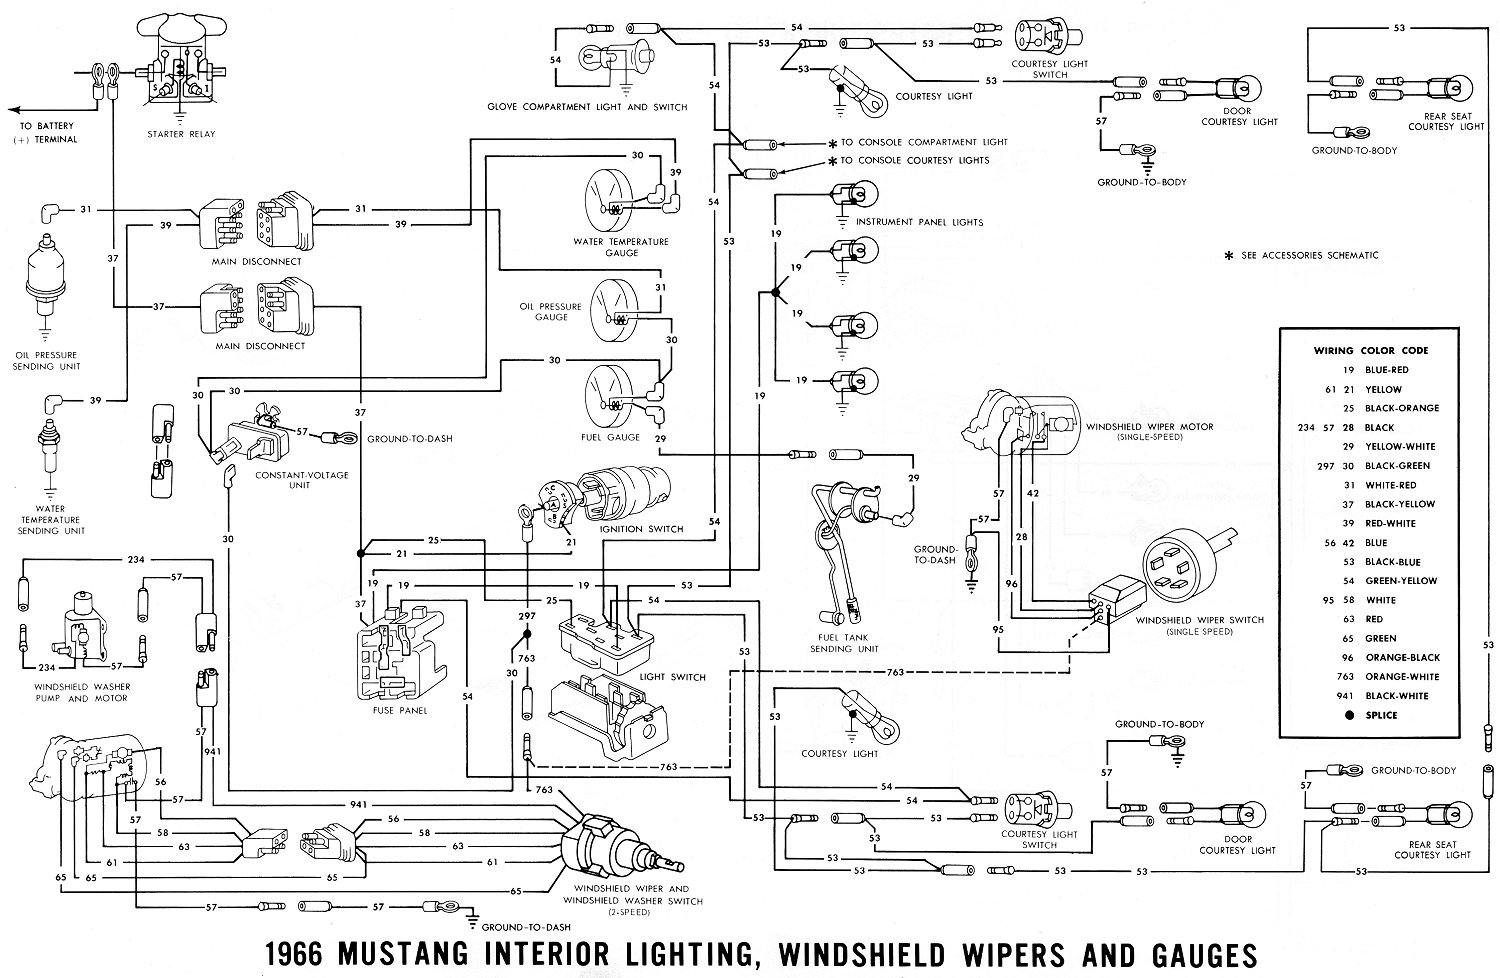 1966 Mustang Light Wiring Opinions About Wiring Diagram \u2022 Mopar  Desktop Theme 66 Mopar Wiper Wiring Diagram